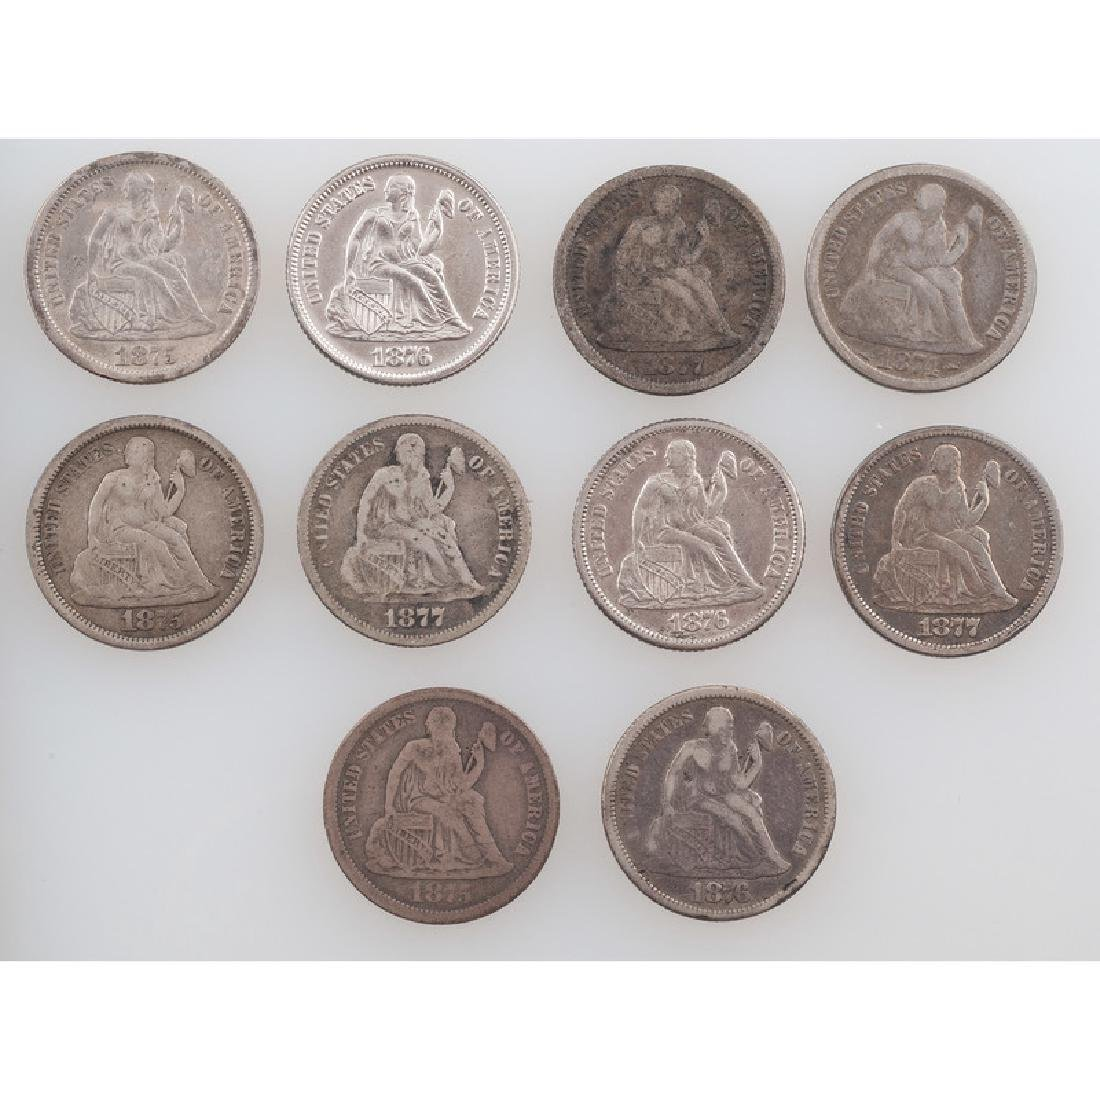 United States Liberty Seated Dimes 1874-1877